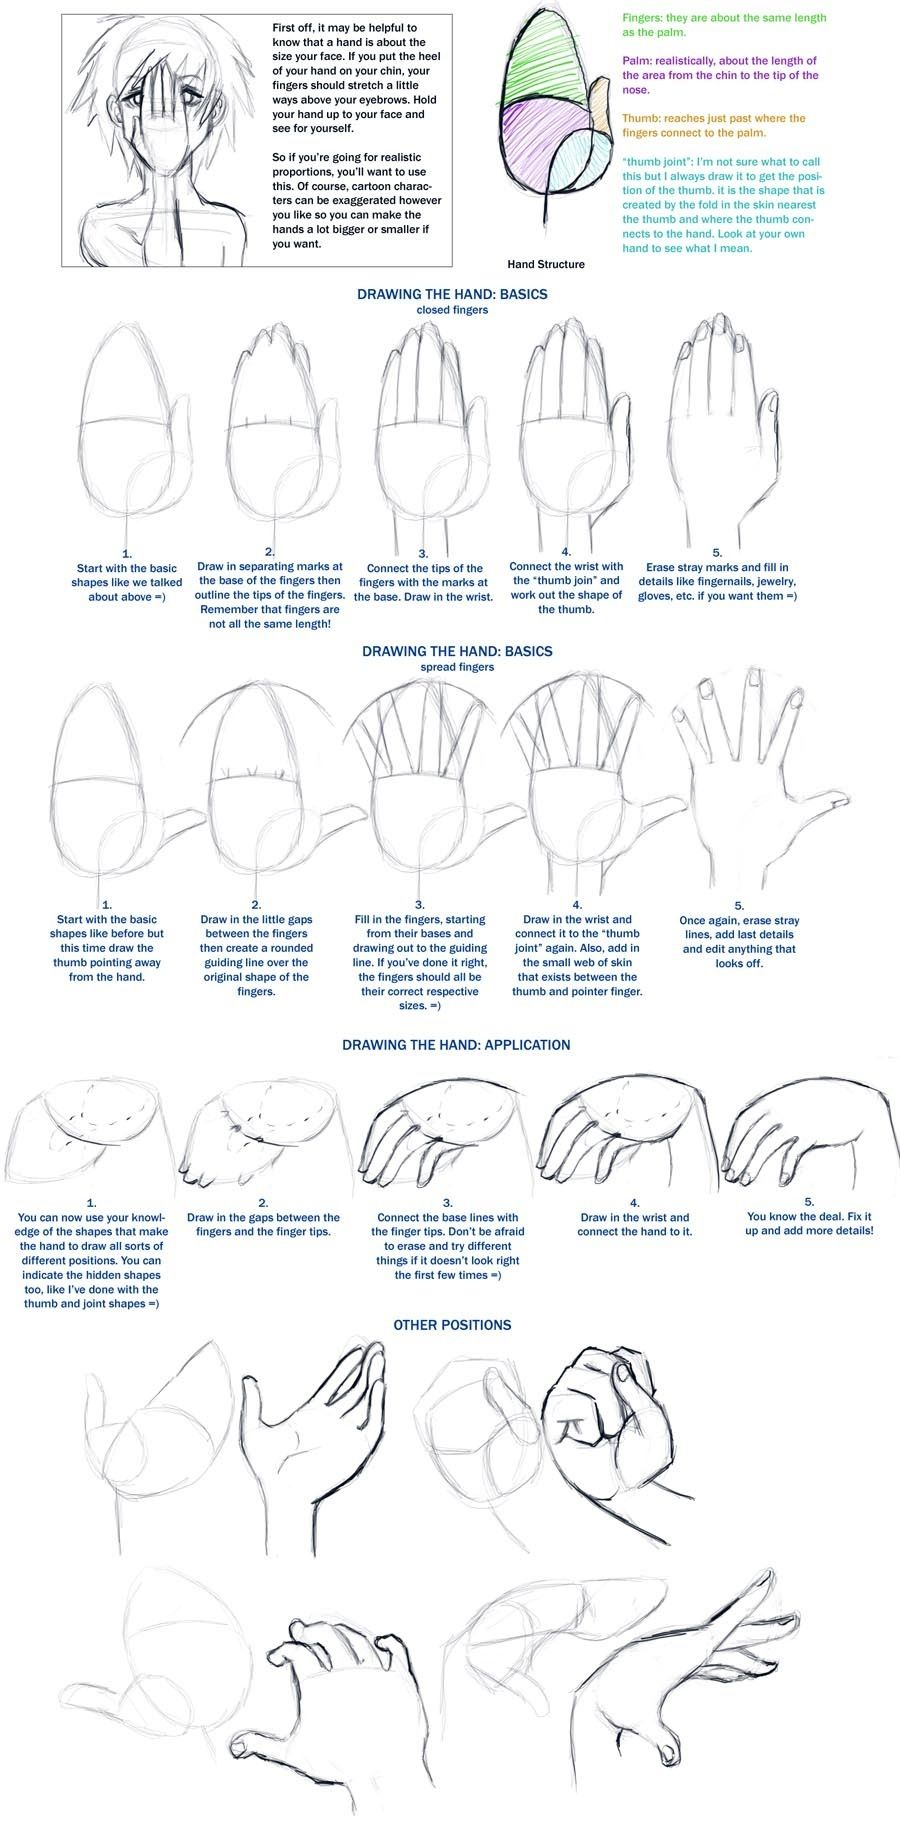 Pin By Derek Goon On How To Draw The Body How To Draw Hands Drawing Tutorial Drawings